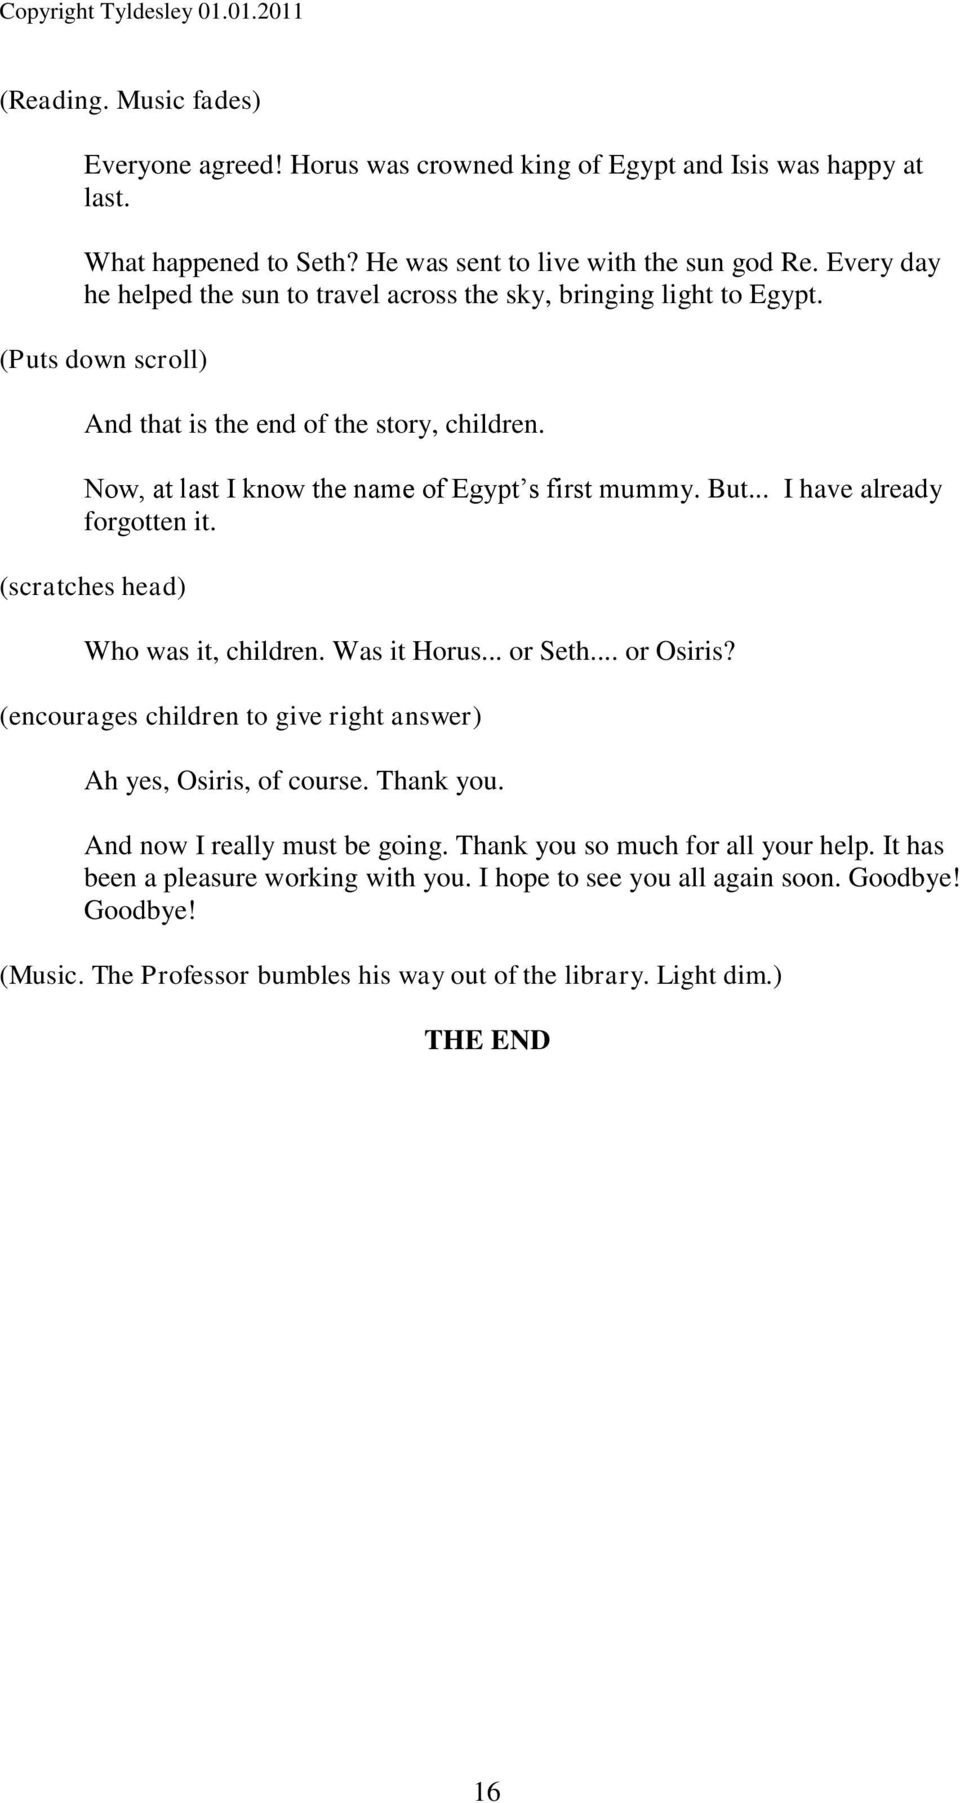 THE LOST SCROLL AN EGYPTIAN PLAY FOR CHILDREN BY JOYCE TYLDESLEY - PDF